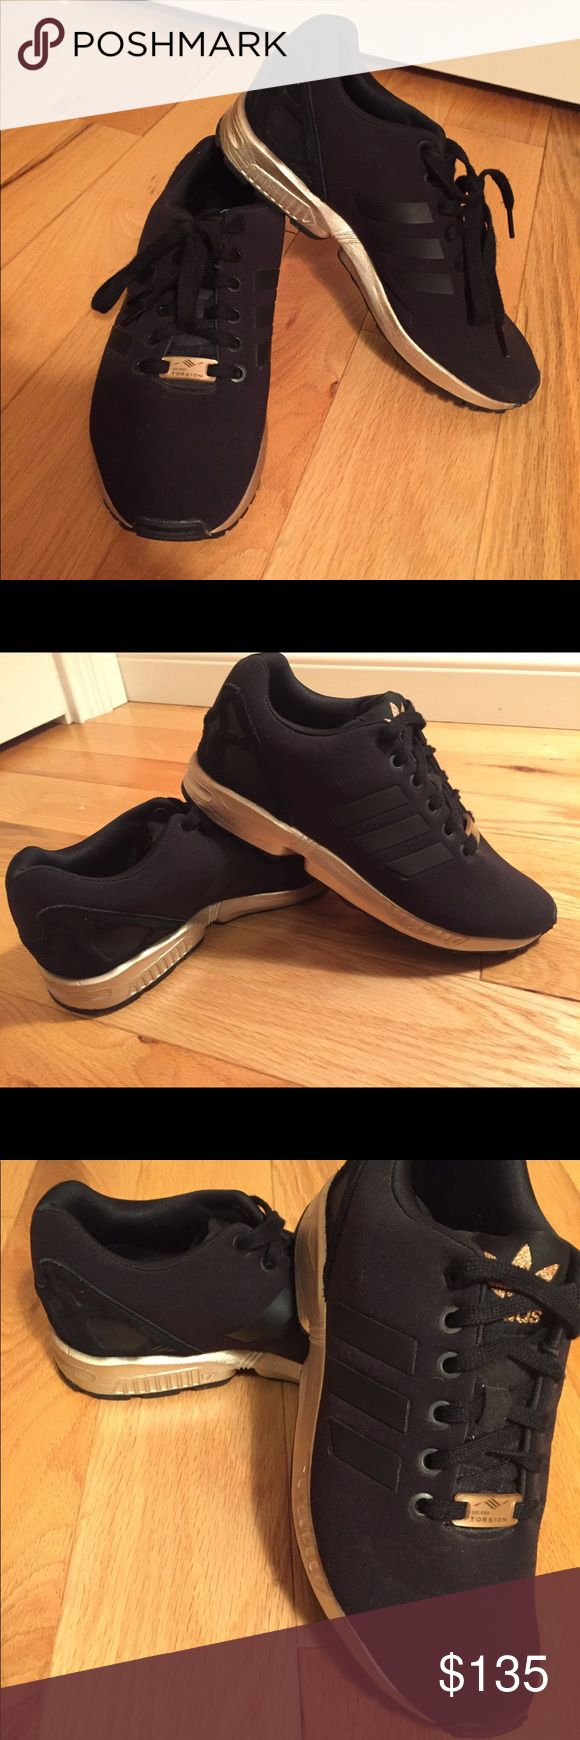 Adidas ZX Flux - LIMITED EDITION Adidas ZX Flux - Black & Rose Gold - LIMITED ADDITION - Authentic - Women's Size 7 - Excellent condition! - Worn only 4-5 times - Very Rare - Box not included ADIDAS ZX FLUX Shoes Athletic Shoes